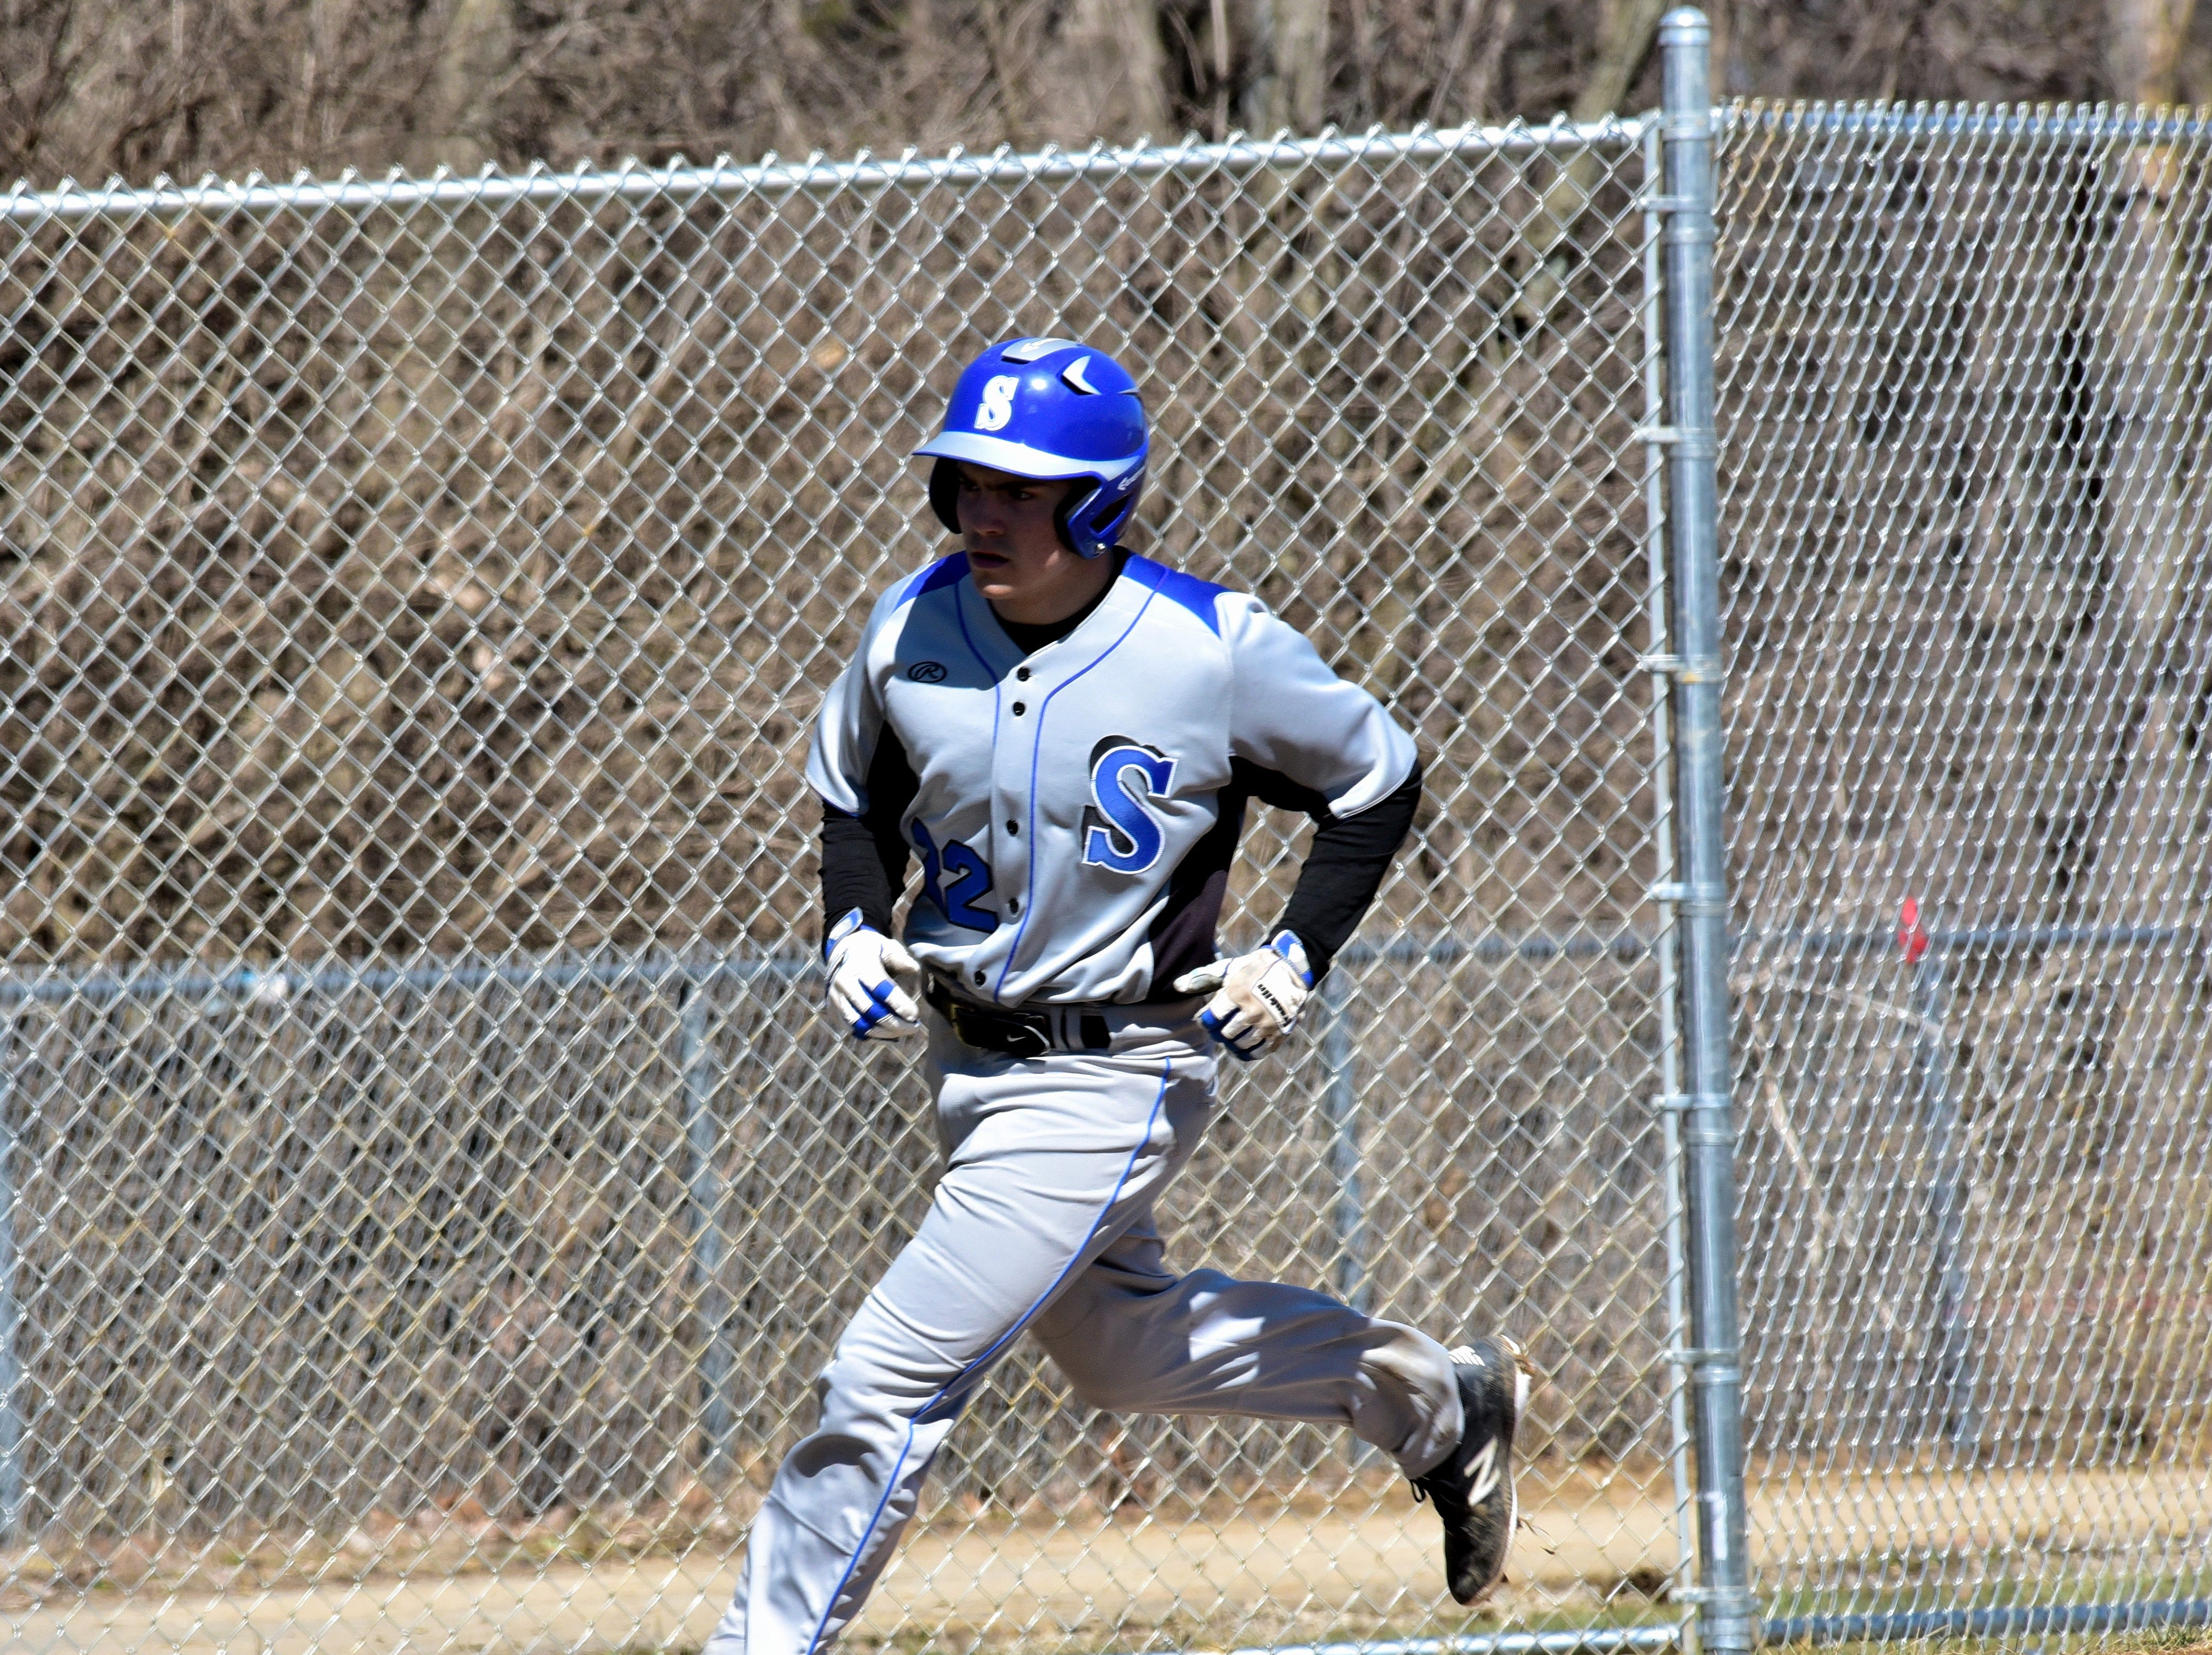 Calvin Walters rounds third base on his way to home plate after belting a solo shot to put Springboro on the board on opening day at Colerain High School, March 23, 2019.